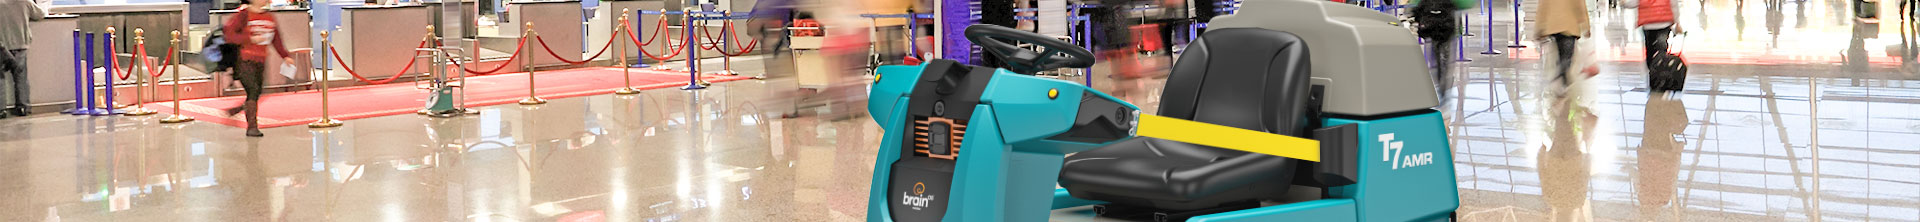 Tennant T7AMR Robotic Floor Scrubber cleaning airport